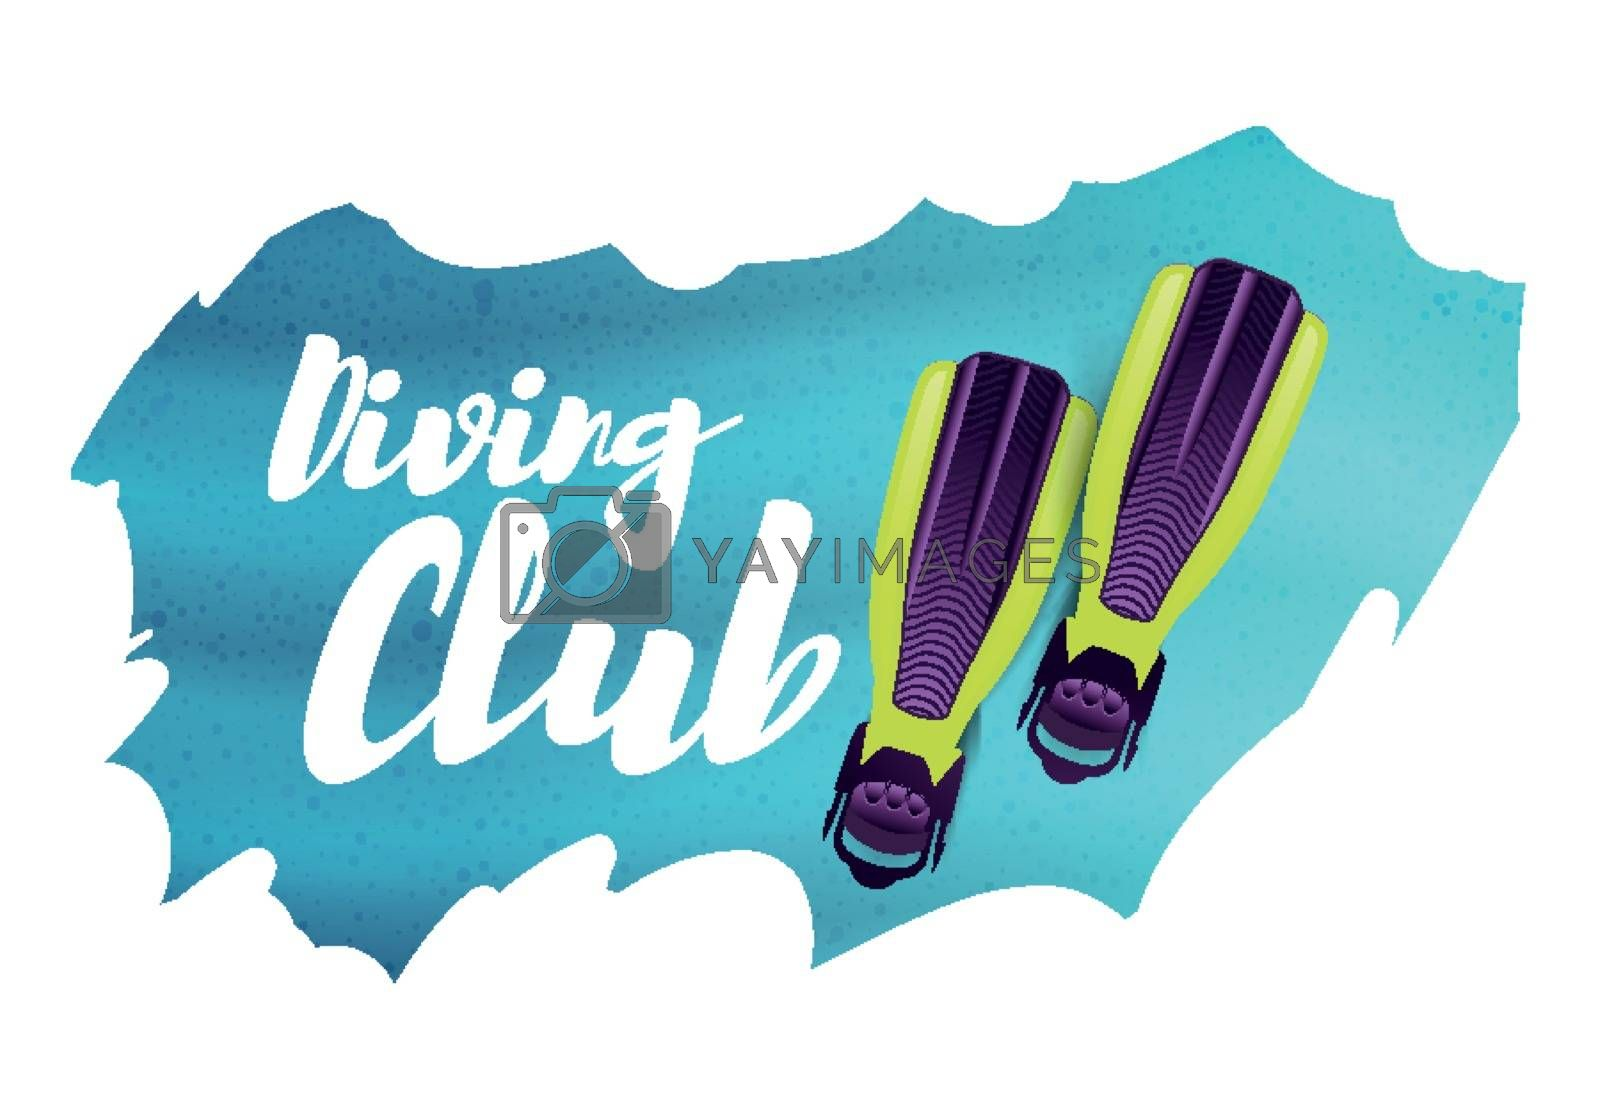 Diving club. Vector illustration with flippers on background